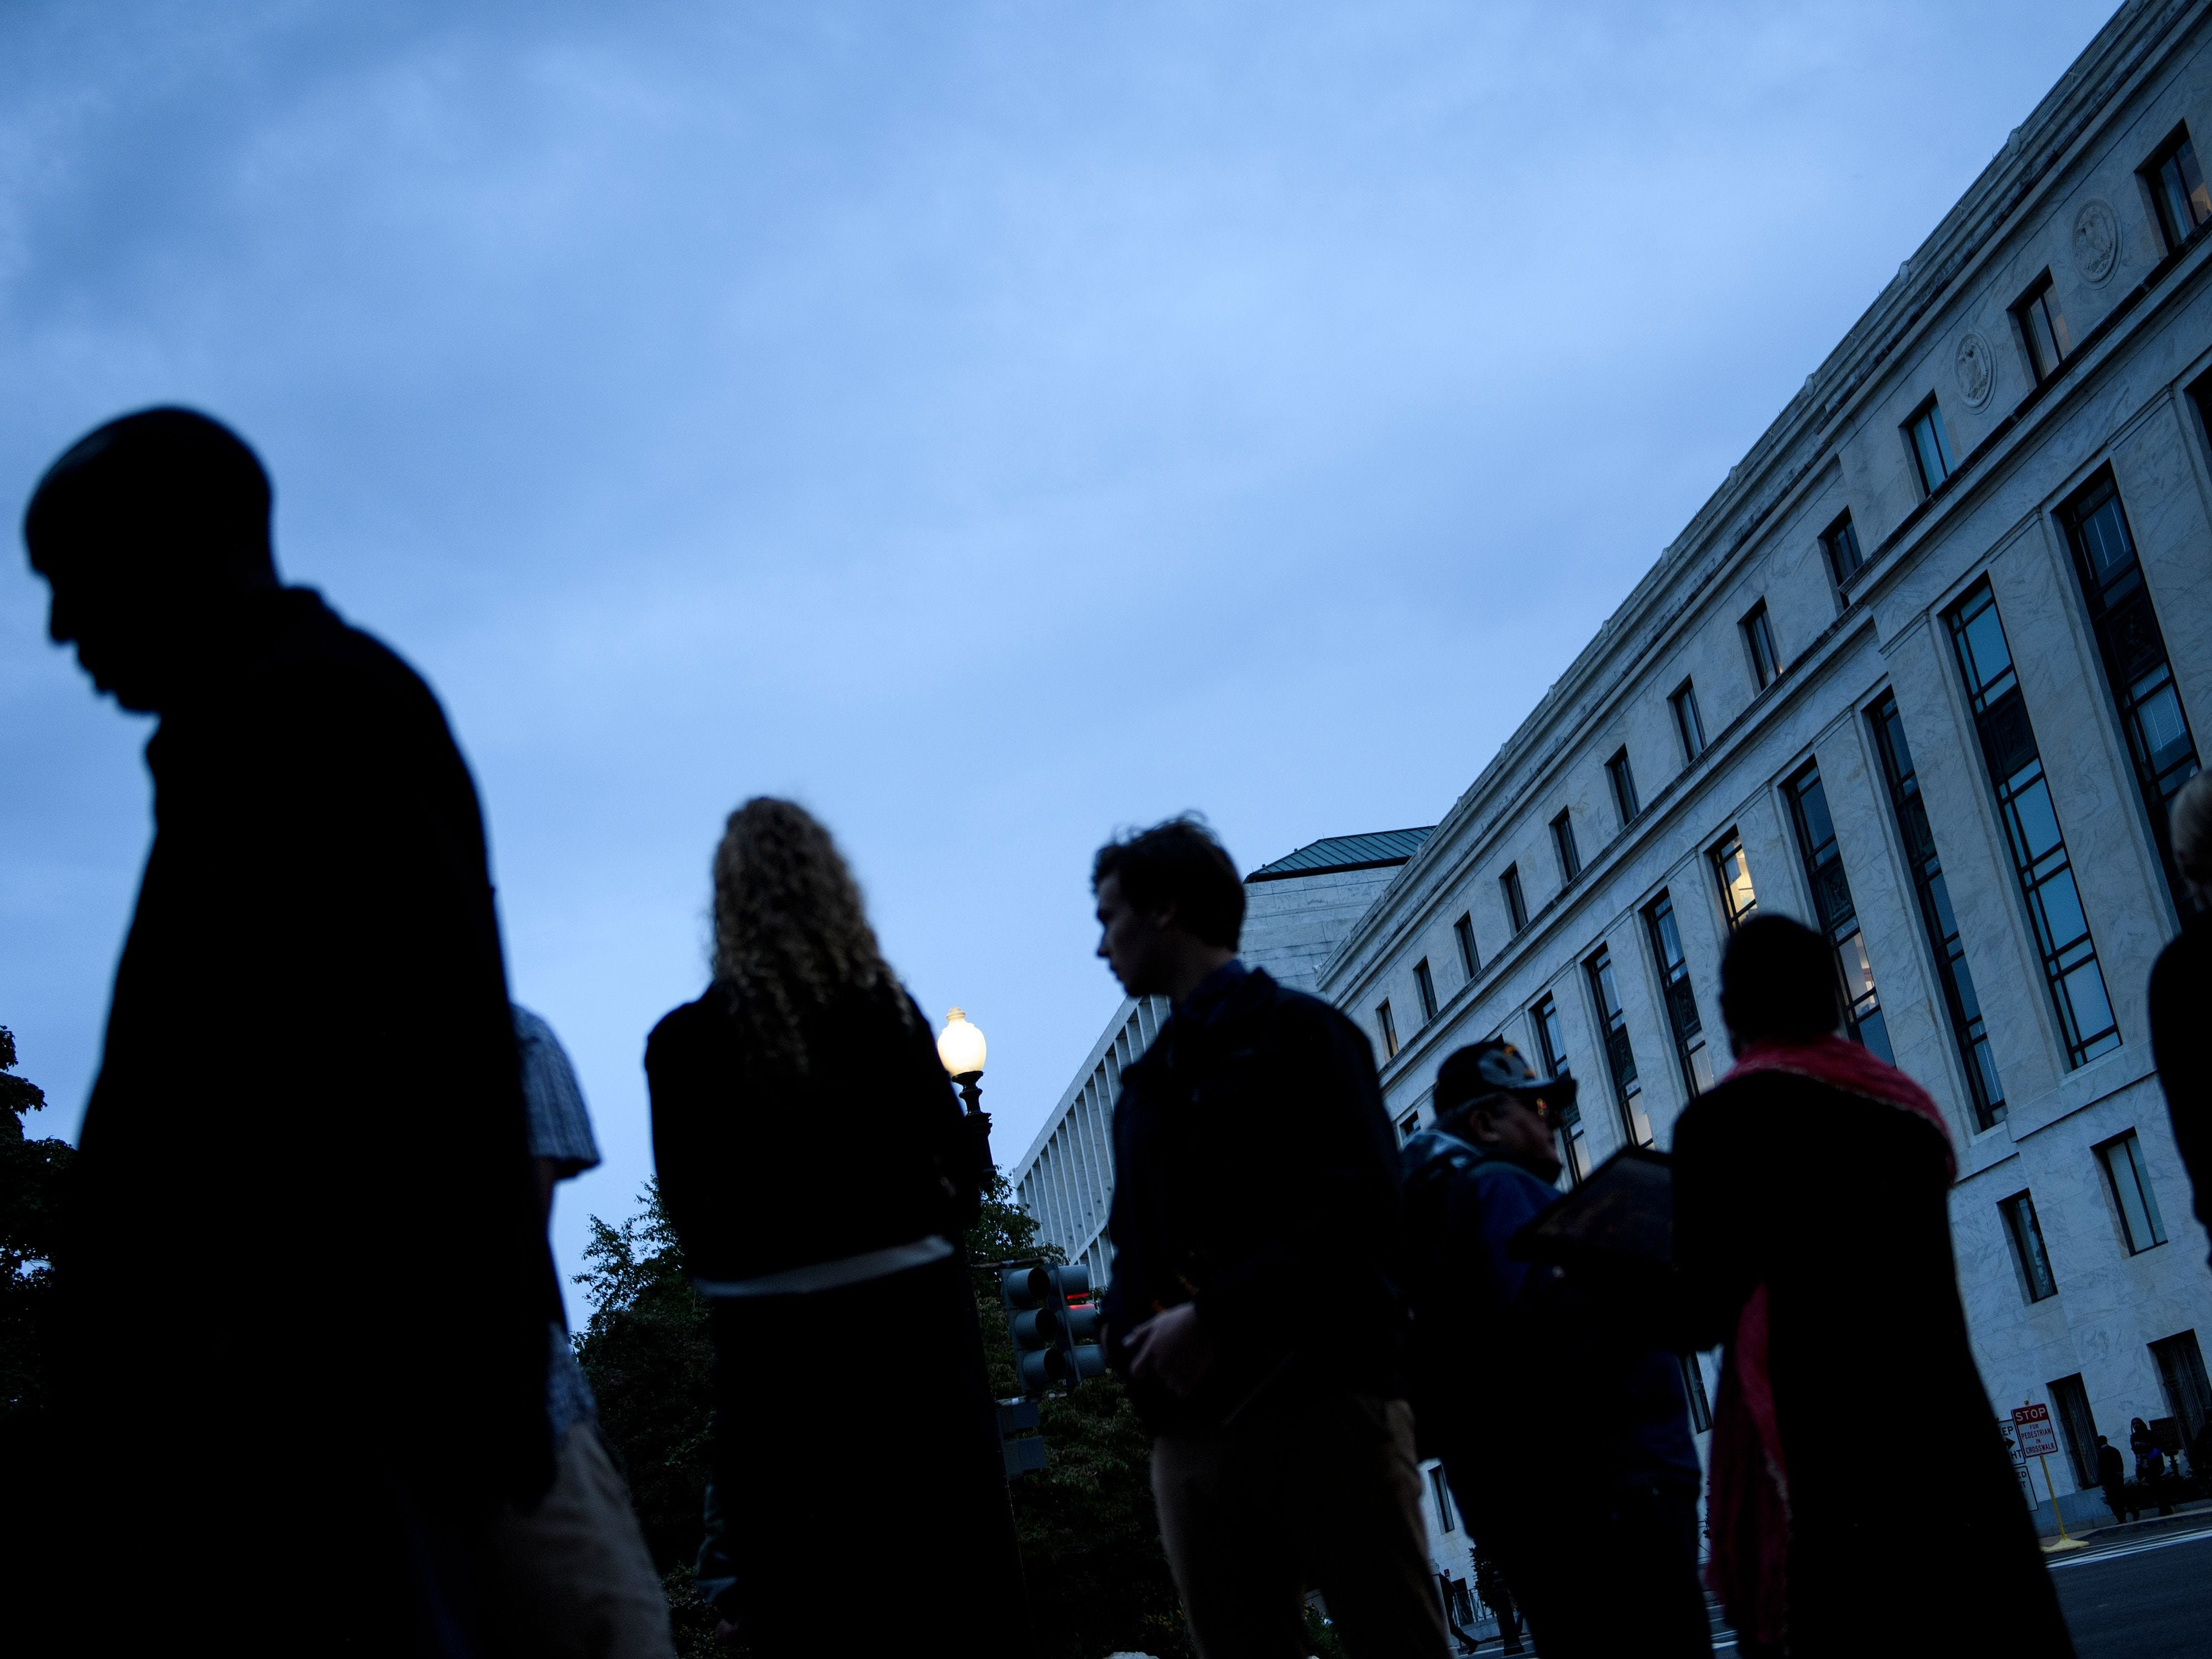 People line up outside the Dirksen Senate Office building before the US Senate Judiciary Committee holds a hearing with Judge Brett Kavanaugh and Dr. Christine Blasey Ford on Capitol Hill September 27, 2018 in Washington, DC. (Photo by Brendan Smialowski / AFP)BRENDAN SMIALOWSKI/AFP/Getty Images ORG XMIT: Christine ORIG FILE ID: AFP_19I28J